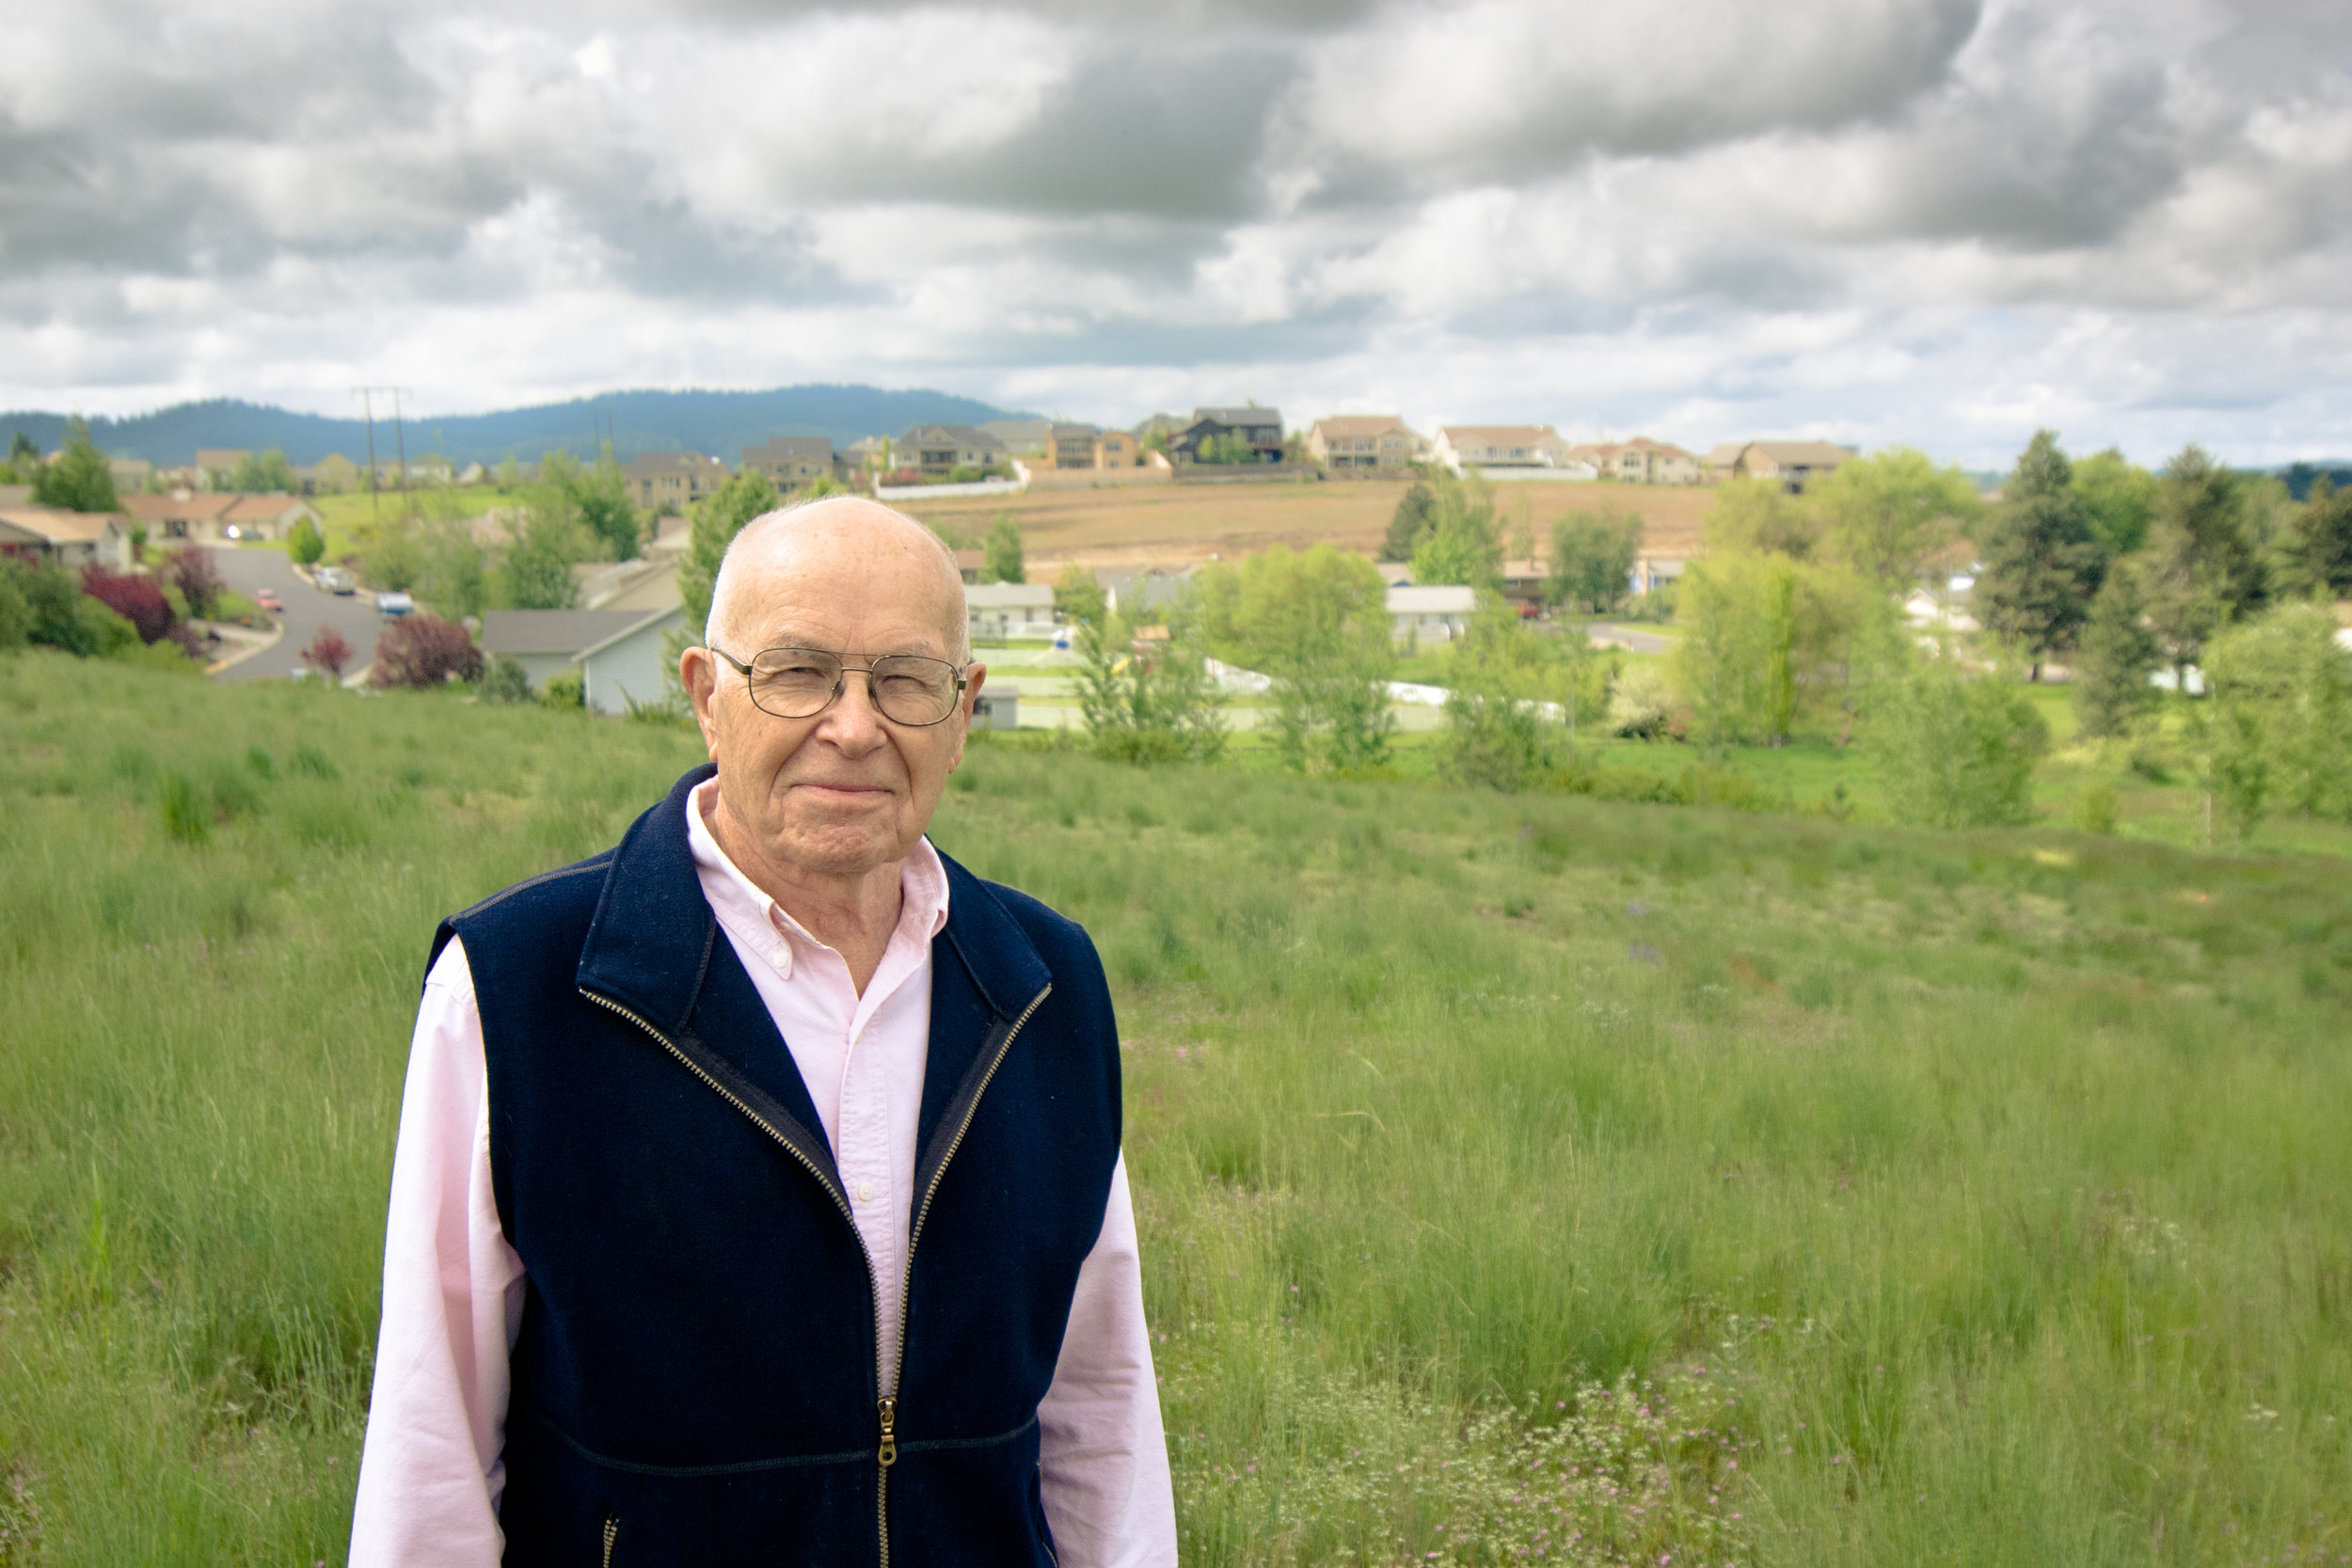 Maynard Fosberg and the prairie restoration planting